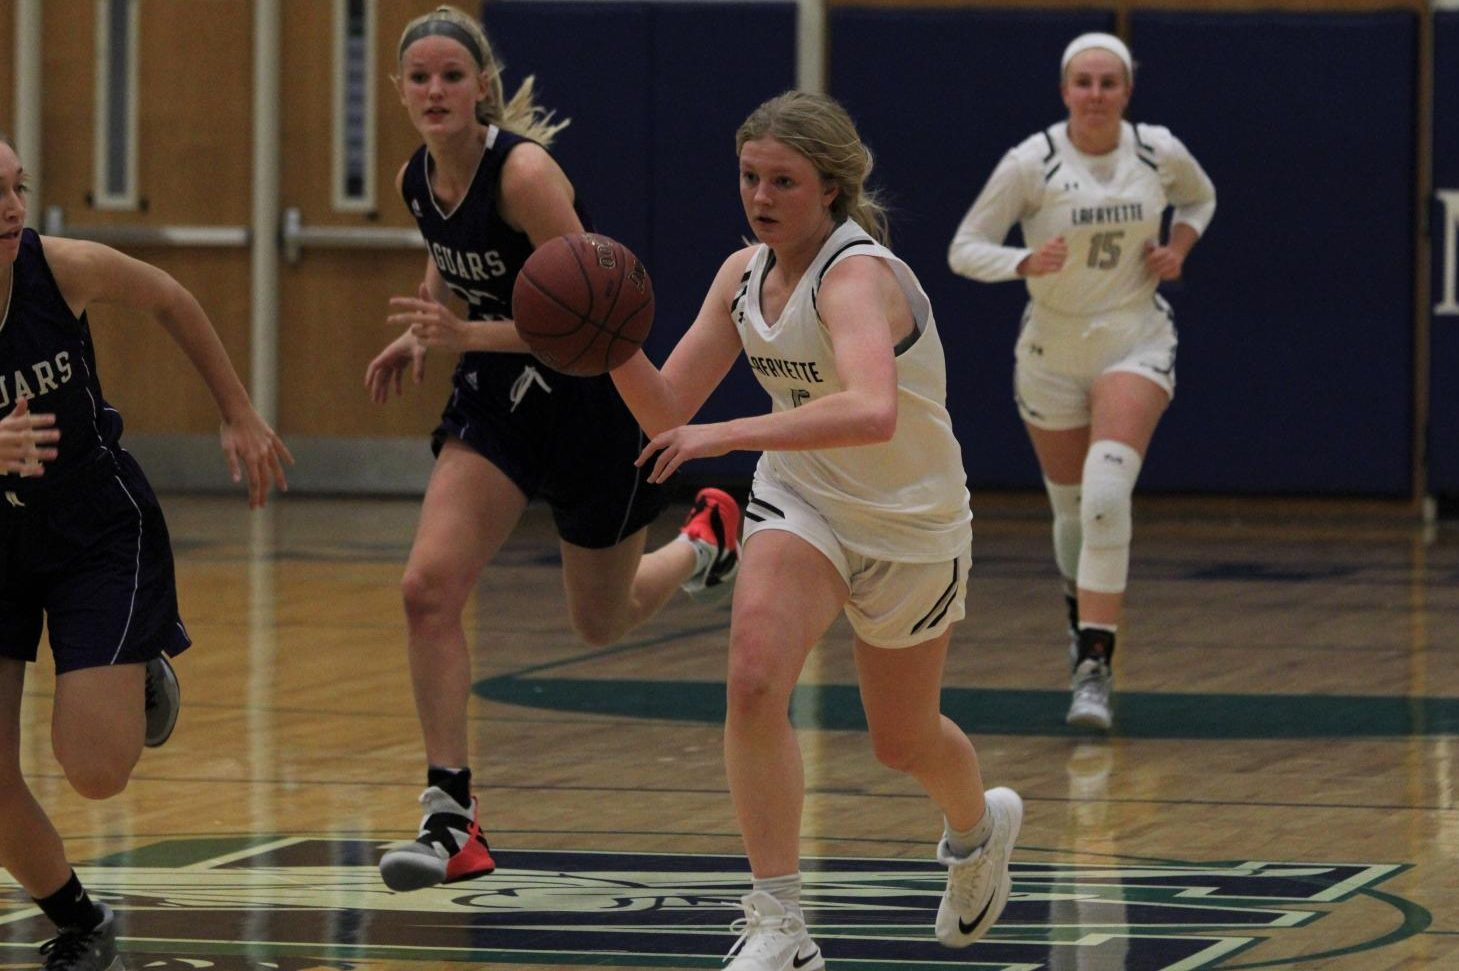 In a game against Fort Zumwalt West in the Marquette tournament, junior Brynn Jeffries outruns two defenders as she makes her way down the court. The Lady Lancers won the game 36-35, and Jeffries was named to the All-Tournament team.